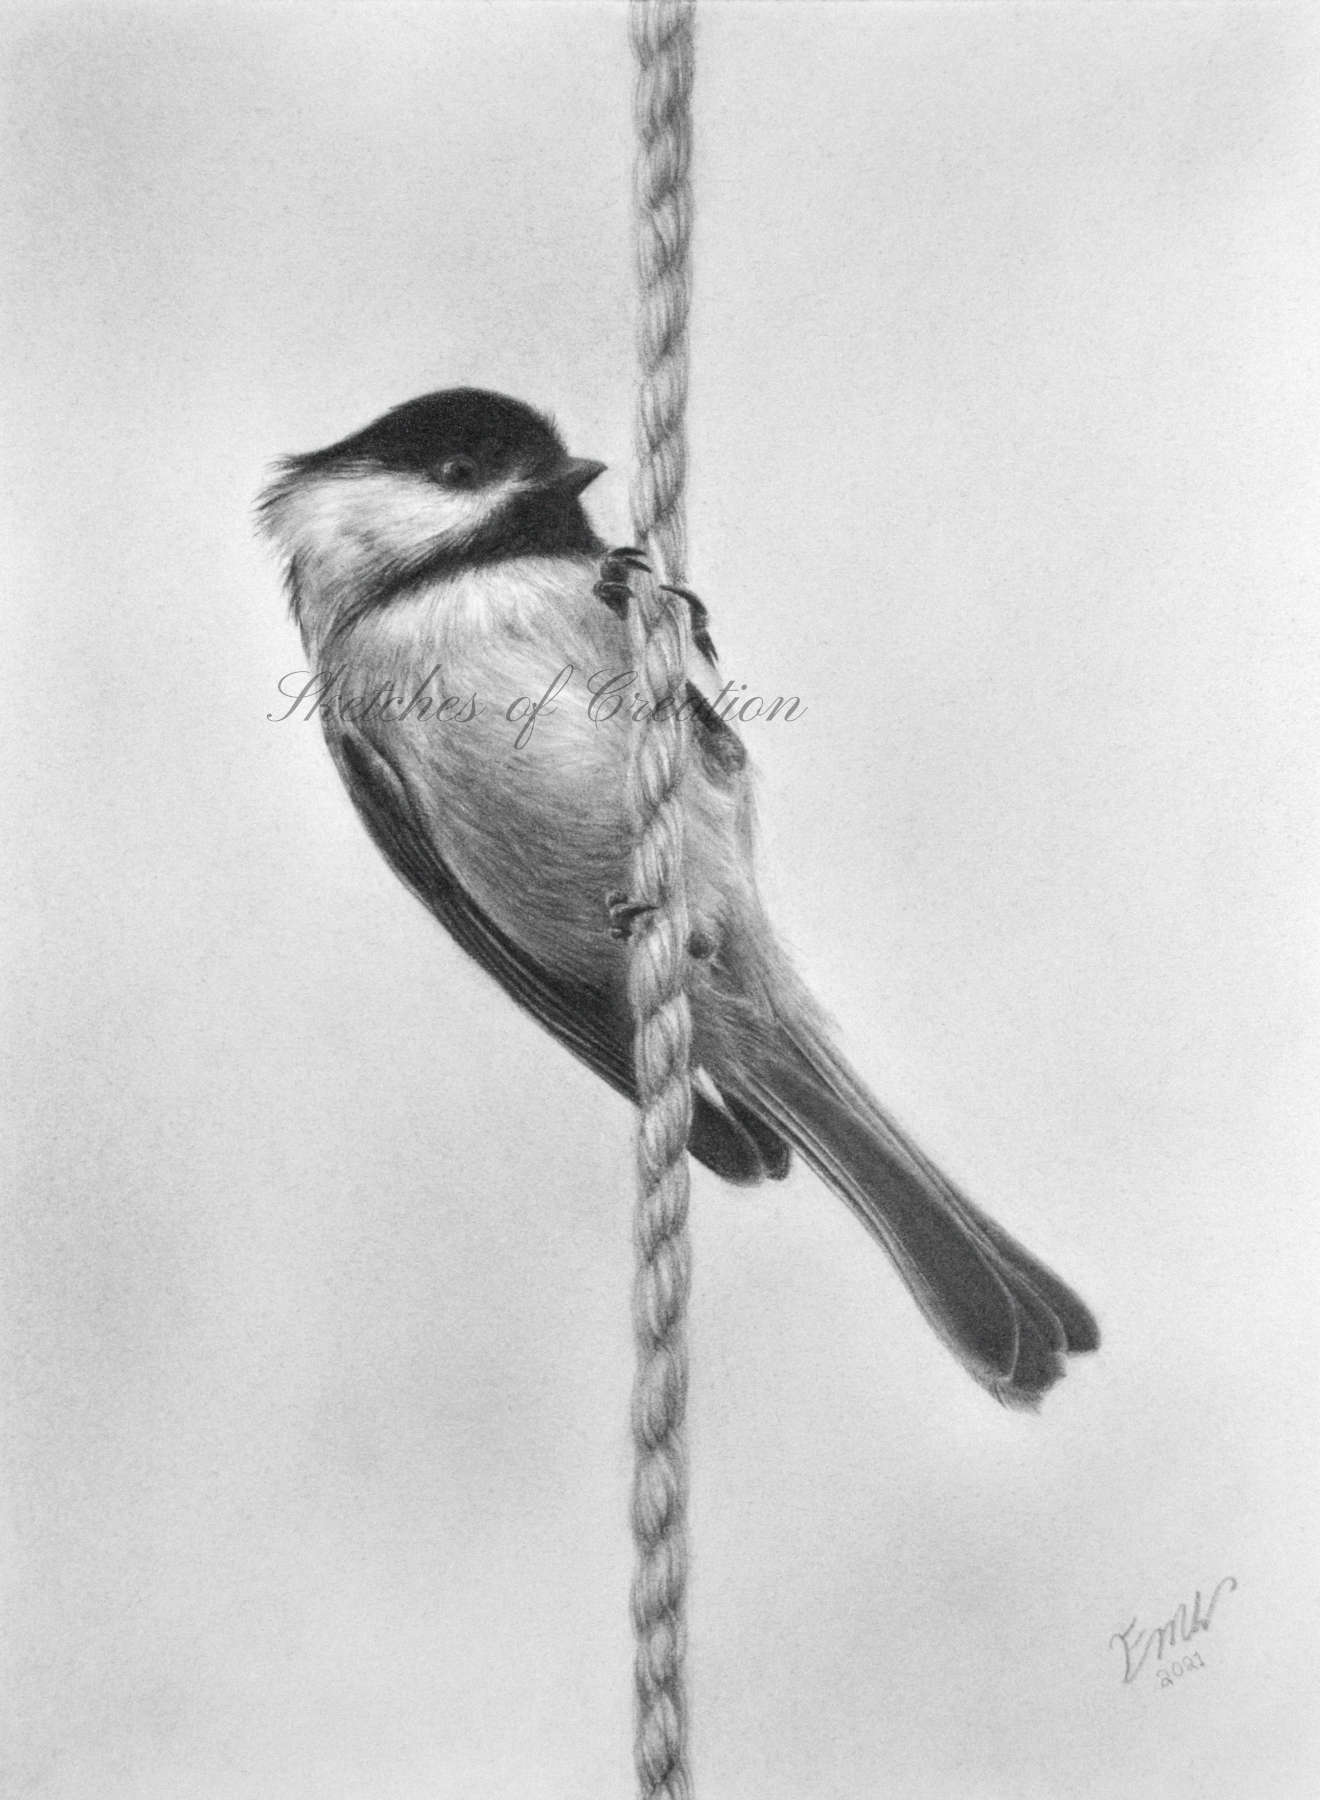 'Chickadee' a drawing of a Chickadee on a rope. approximately 6x8 inches. Completed March 2021